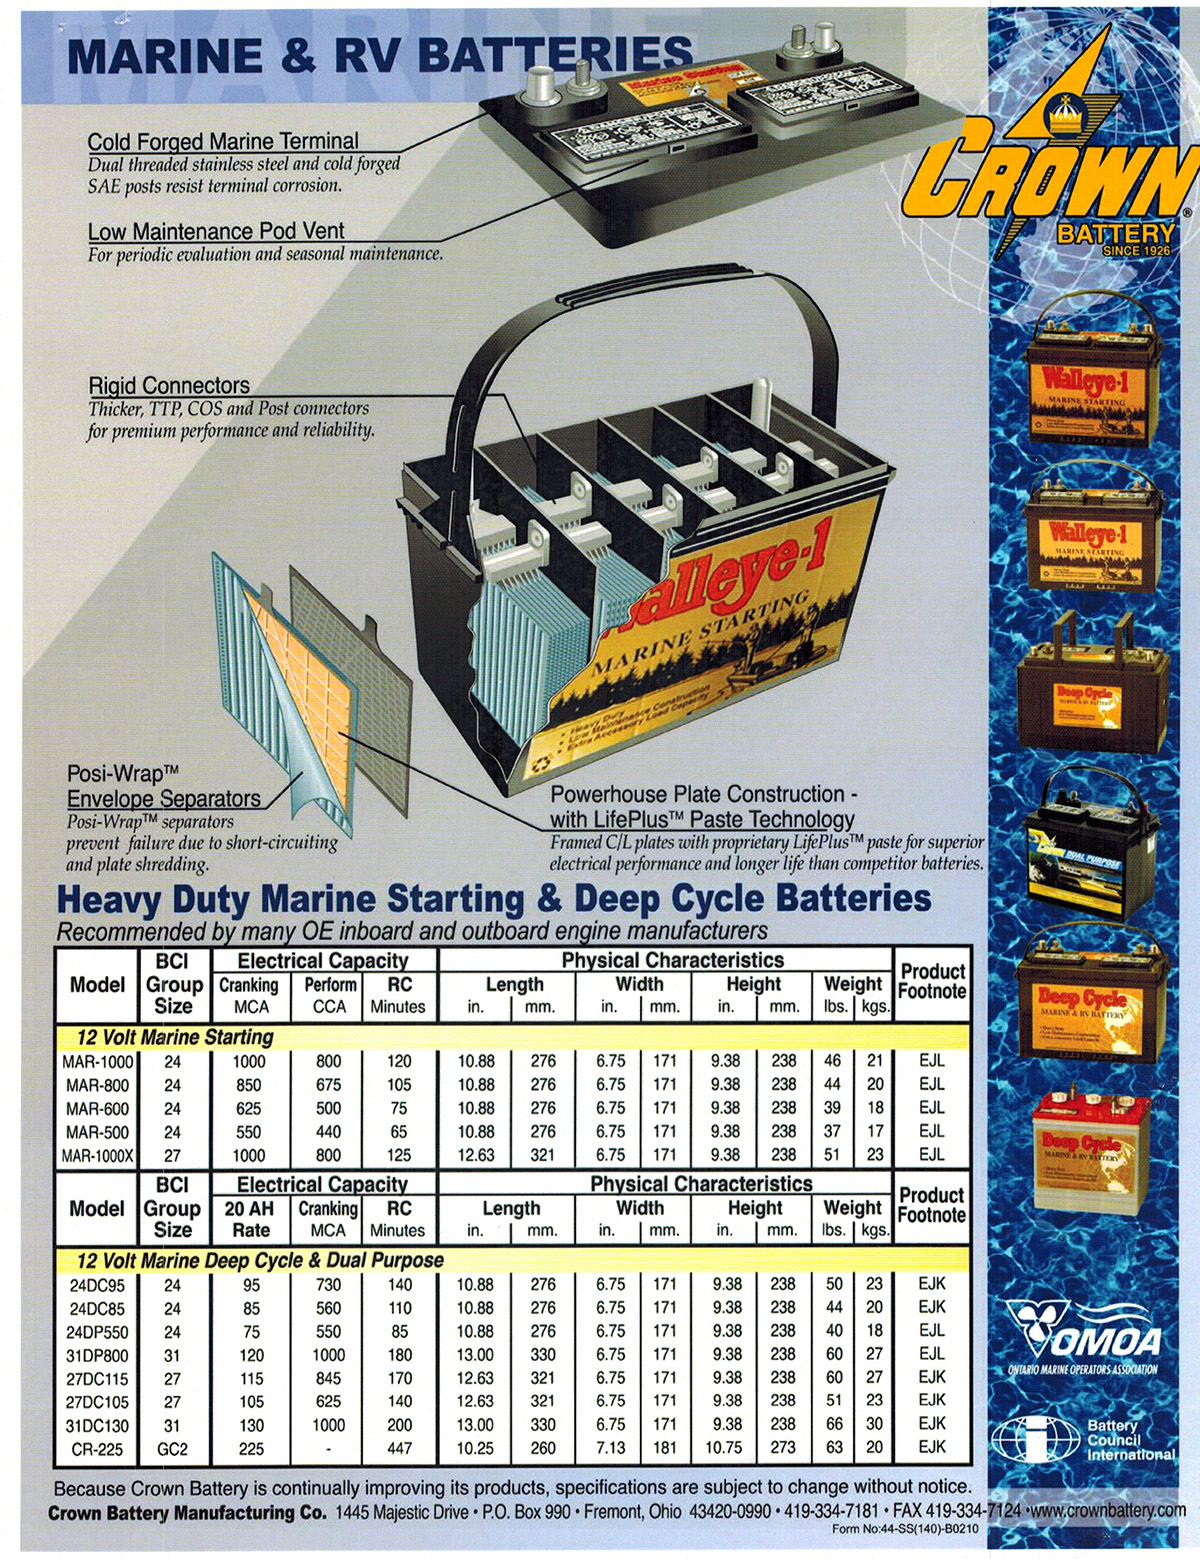 Crown battery walleye g24 800 cca starting marine outfitters crown battery walleye g24 800 cca starting marine outfitters ontario canada nvjuhfo Images